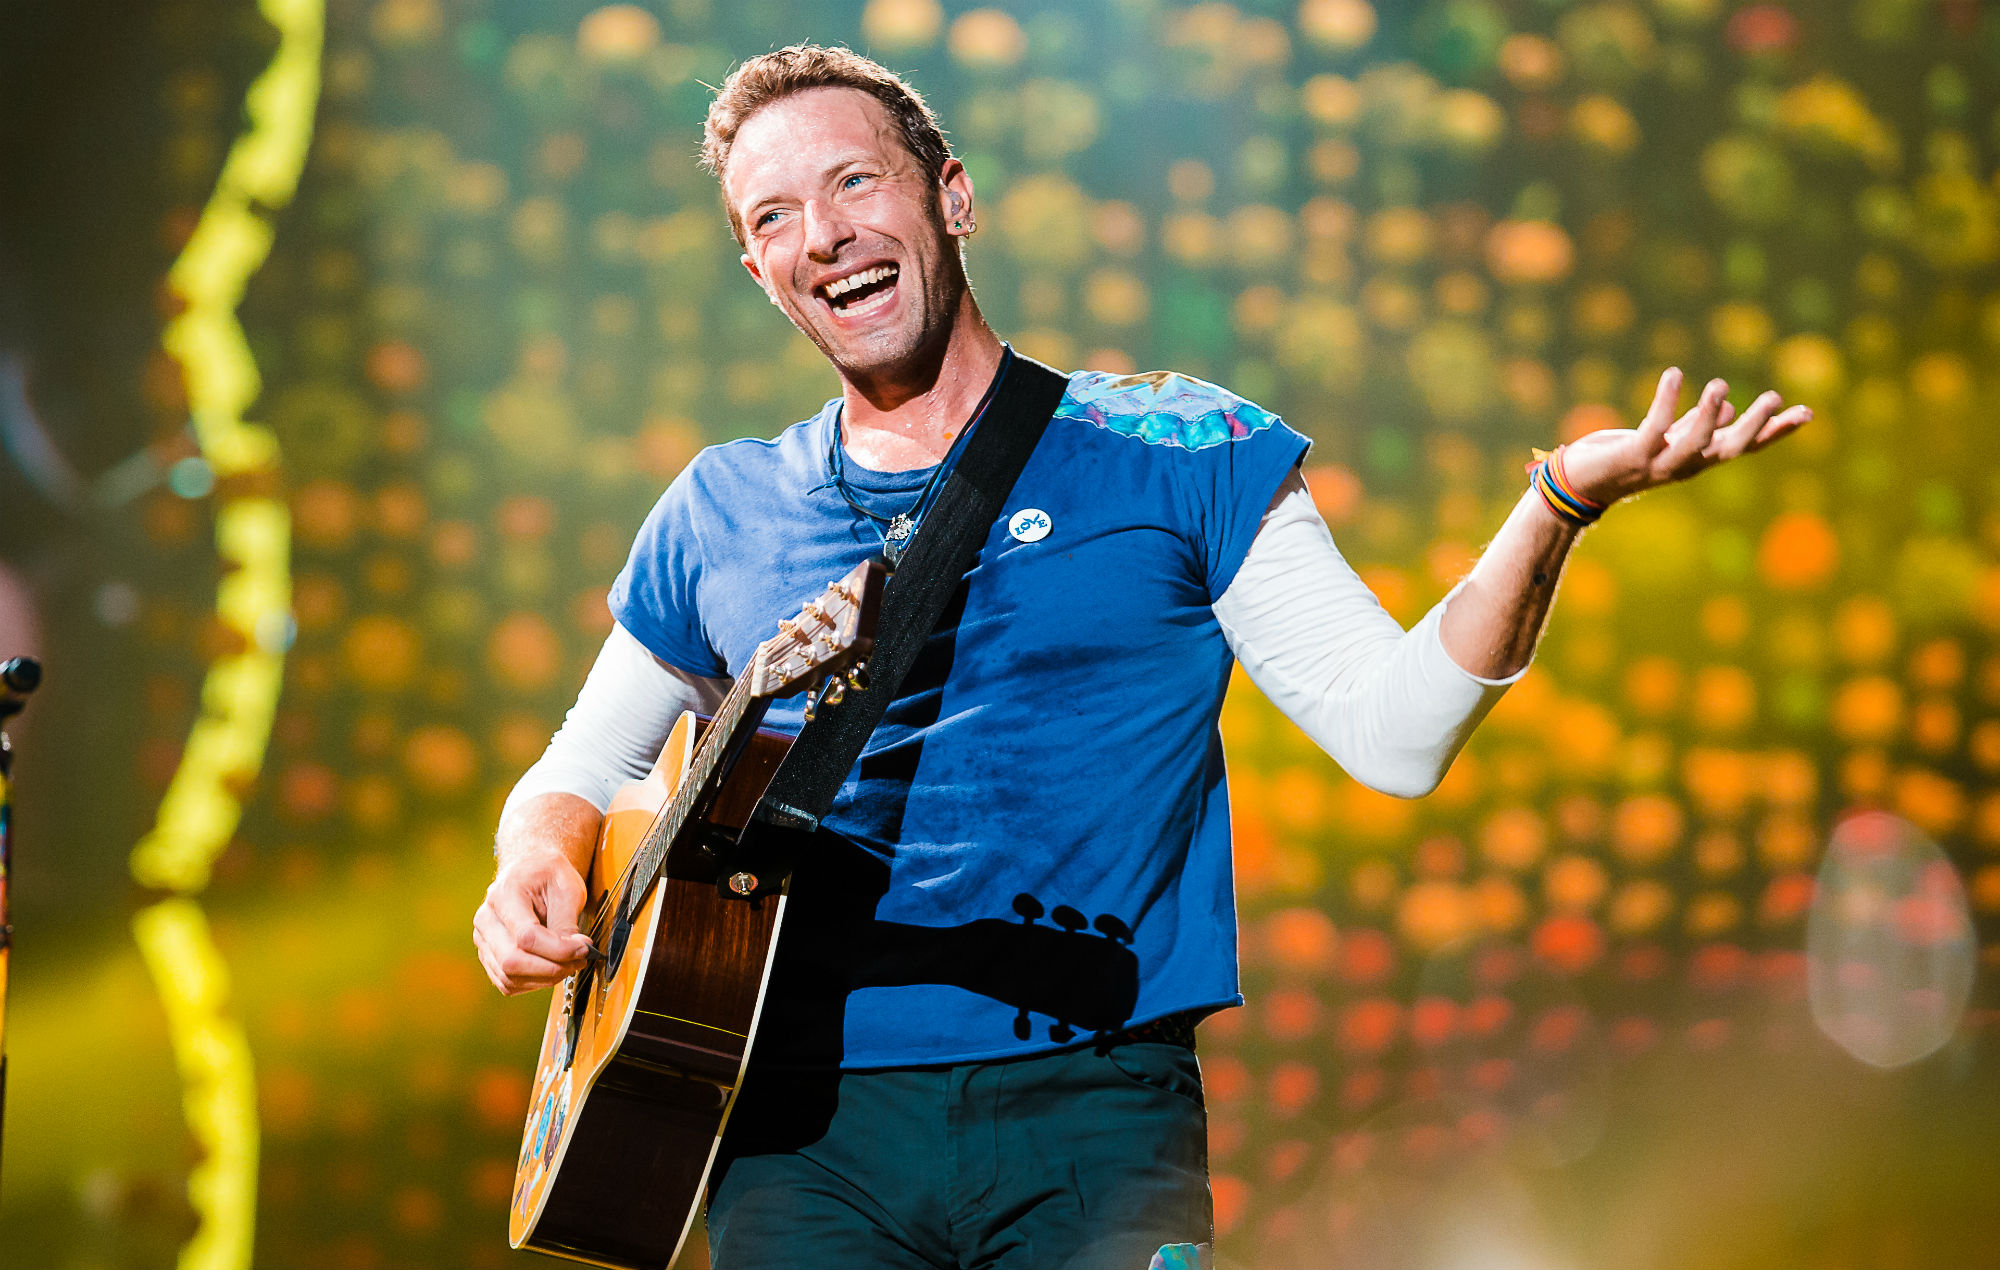 NME Festival blog: Coldplay expected to release new music today